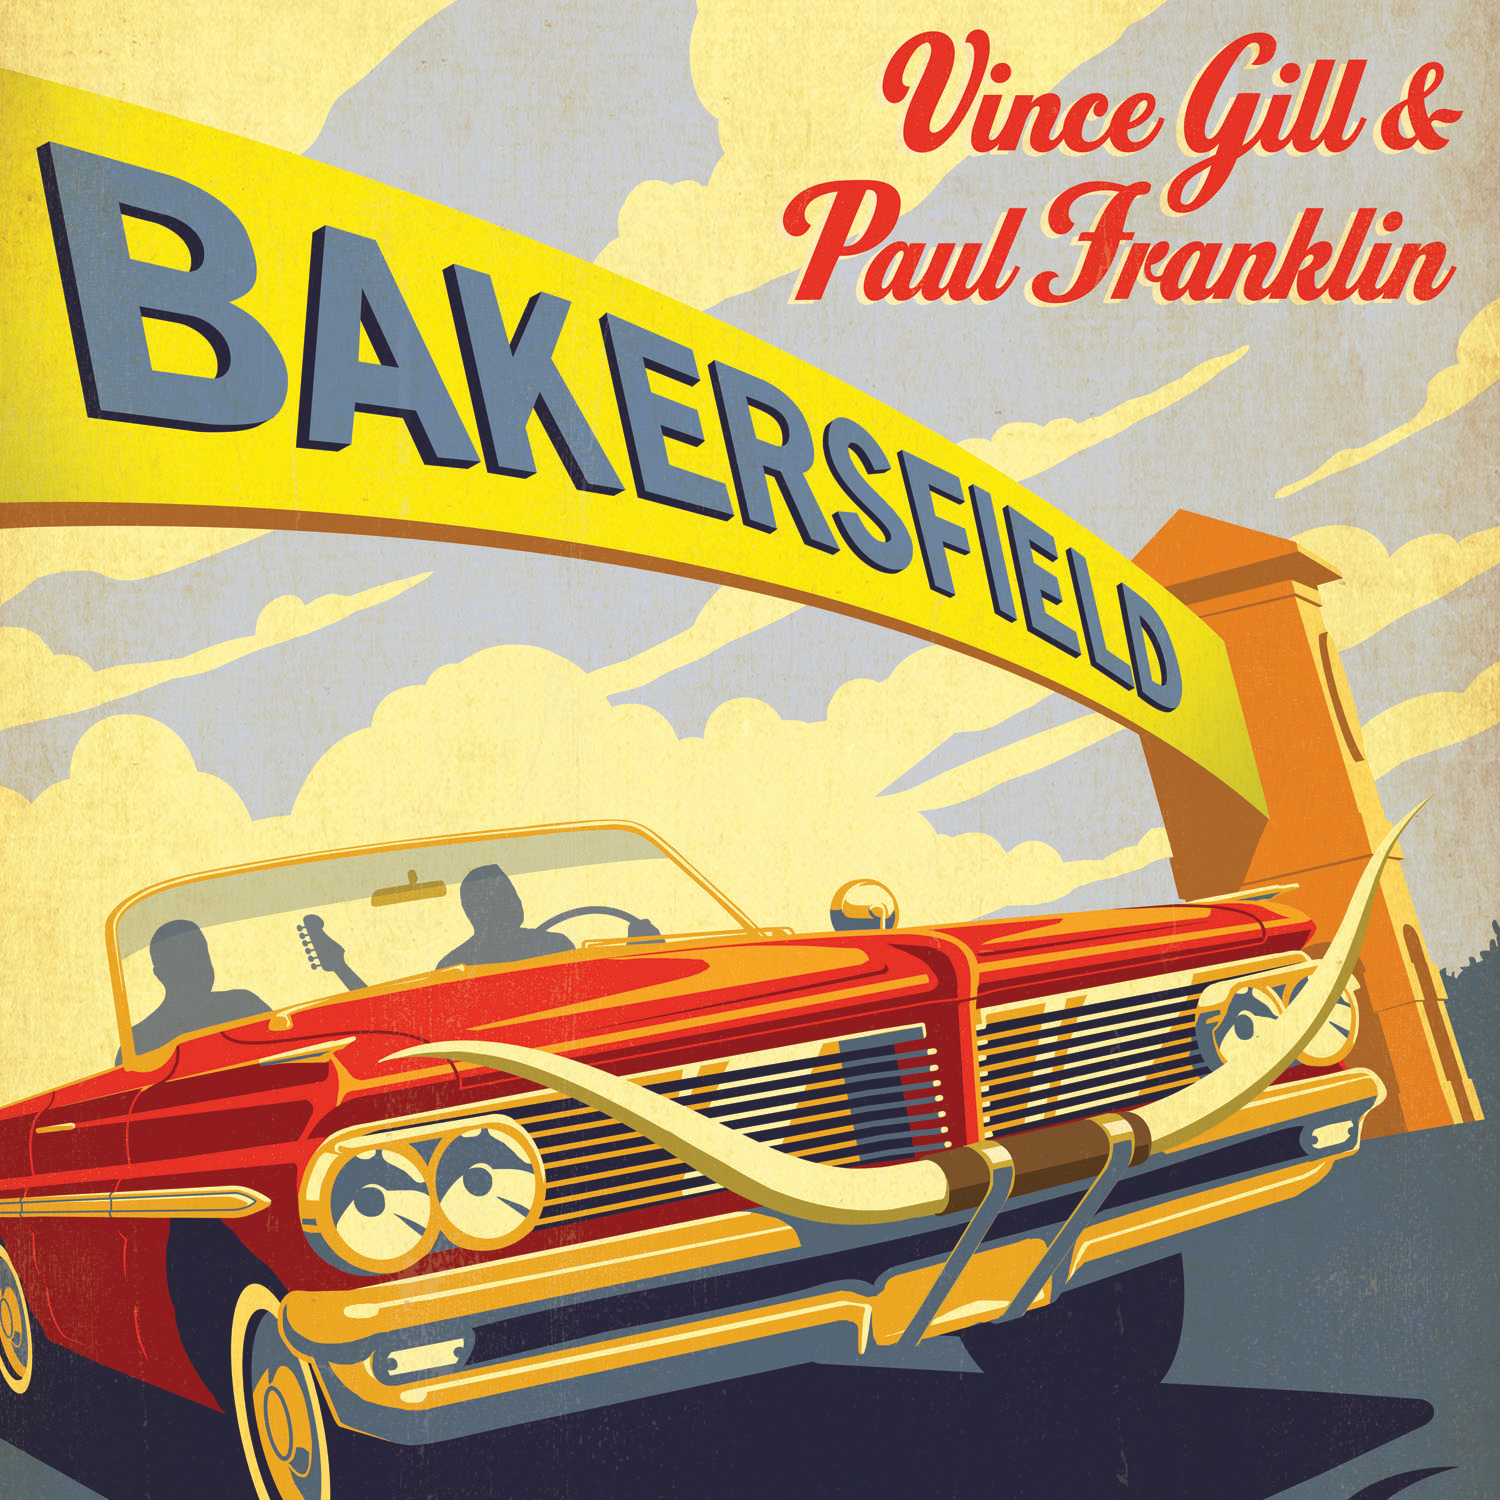 Vince gill paul franklin signed bakersfield cd giveaway for Bakersfield home magazine